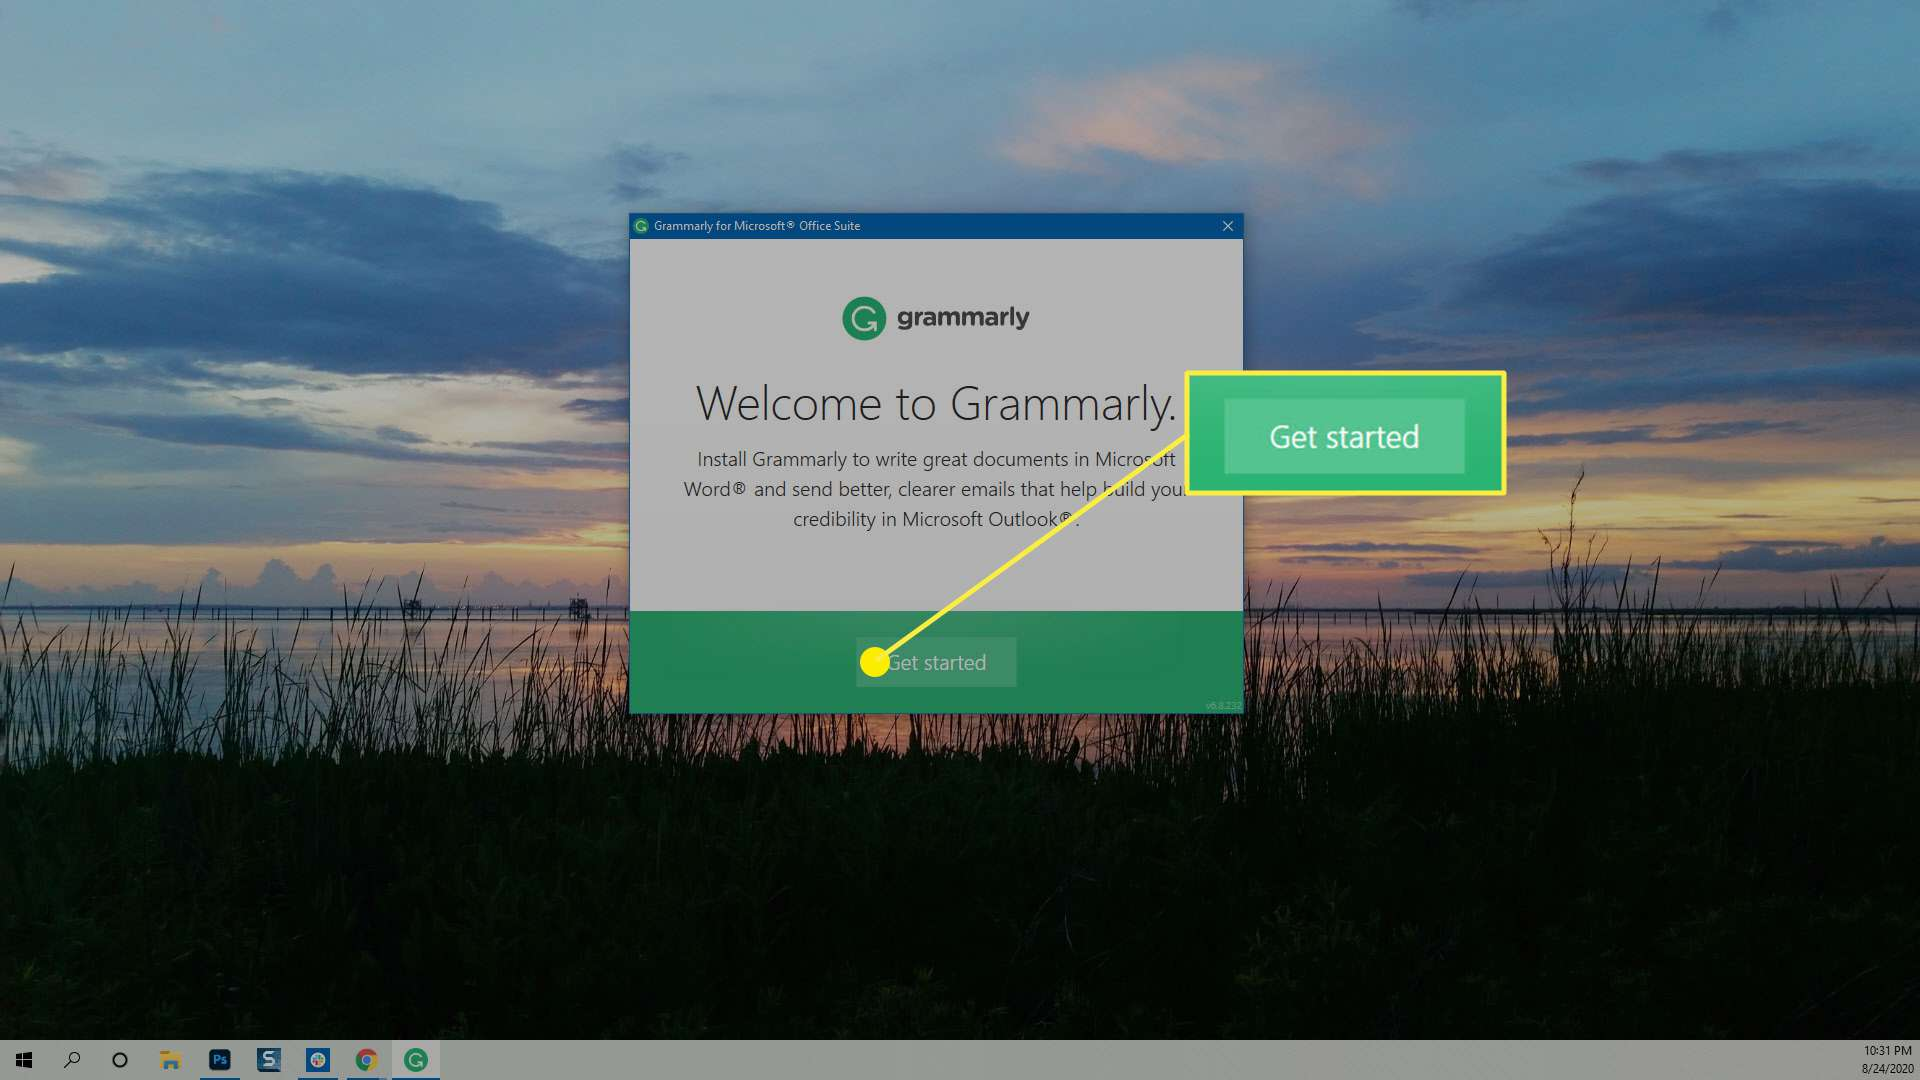 Getting started installing Grammarly for MS Word.